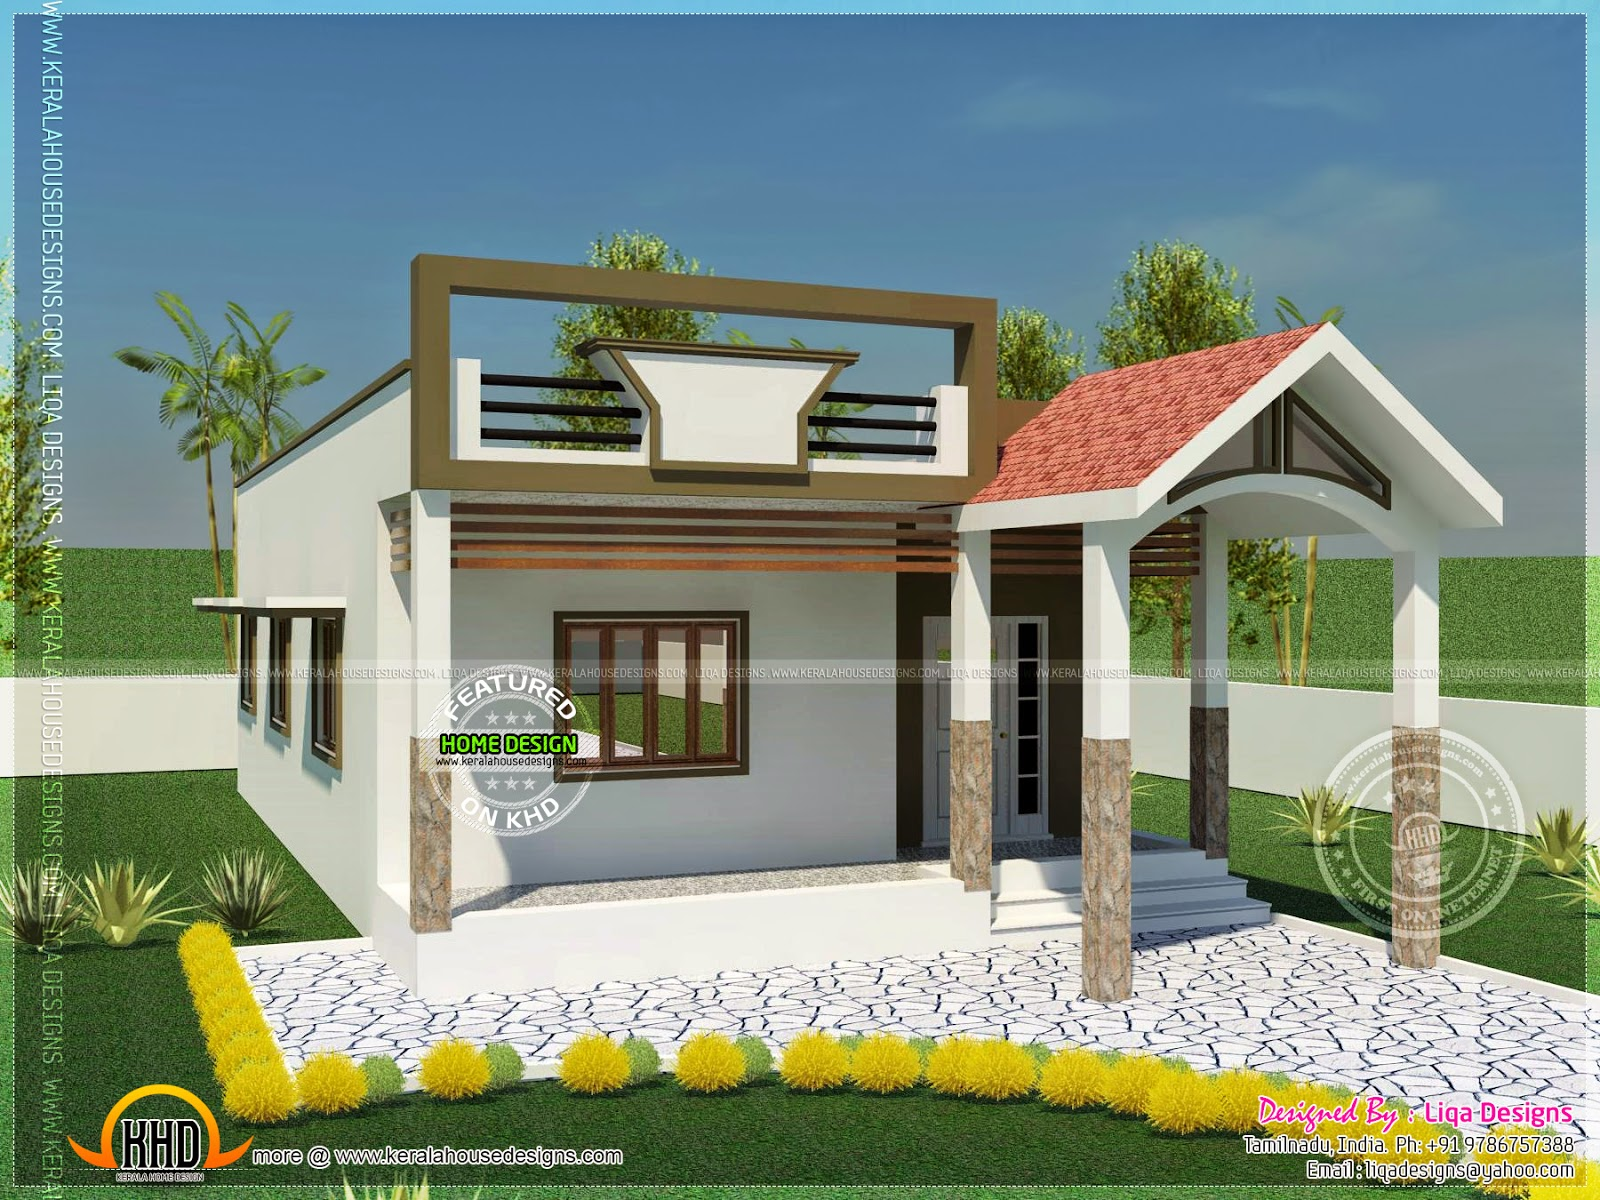 October 2014 home kerala plans for Home designs in tamilnadu